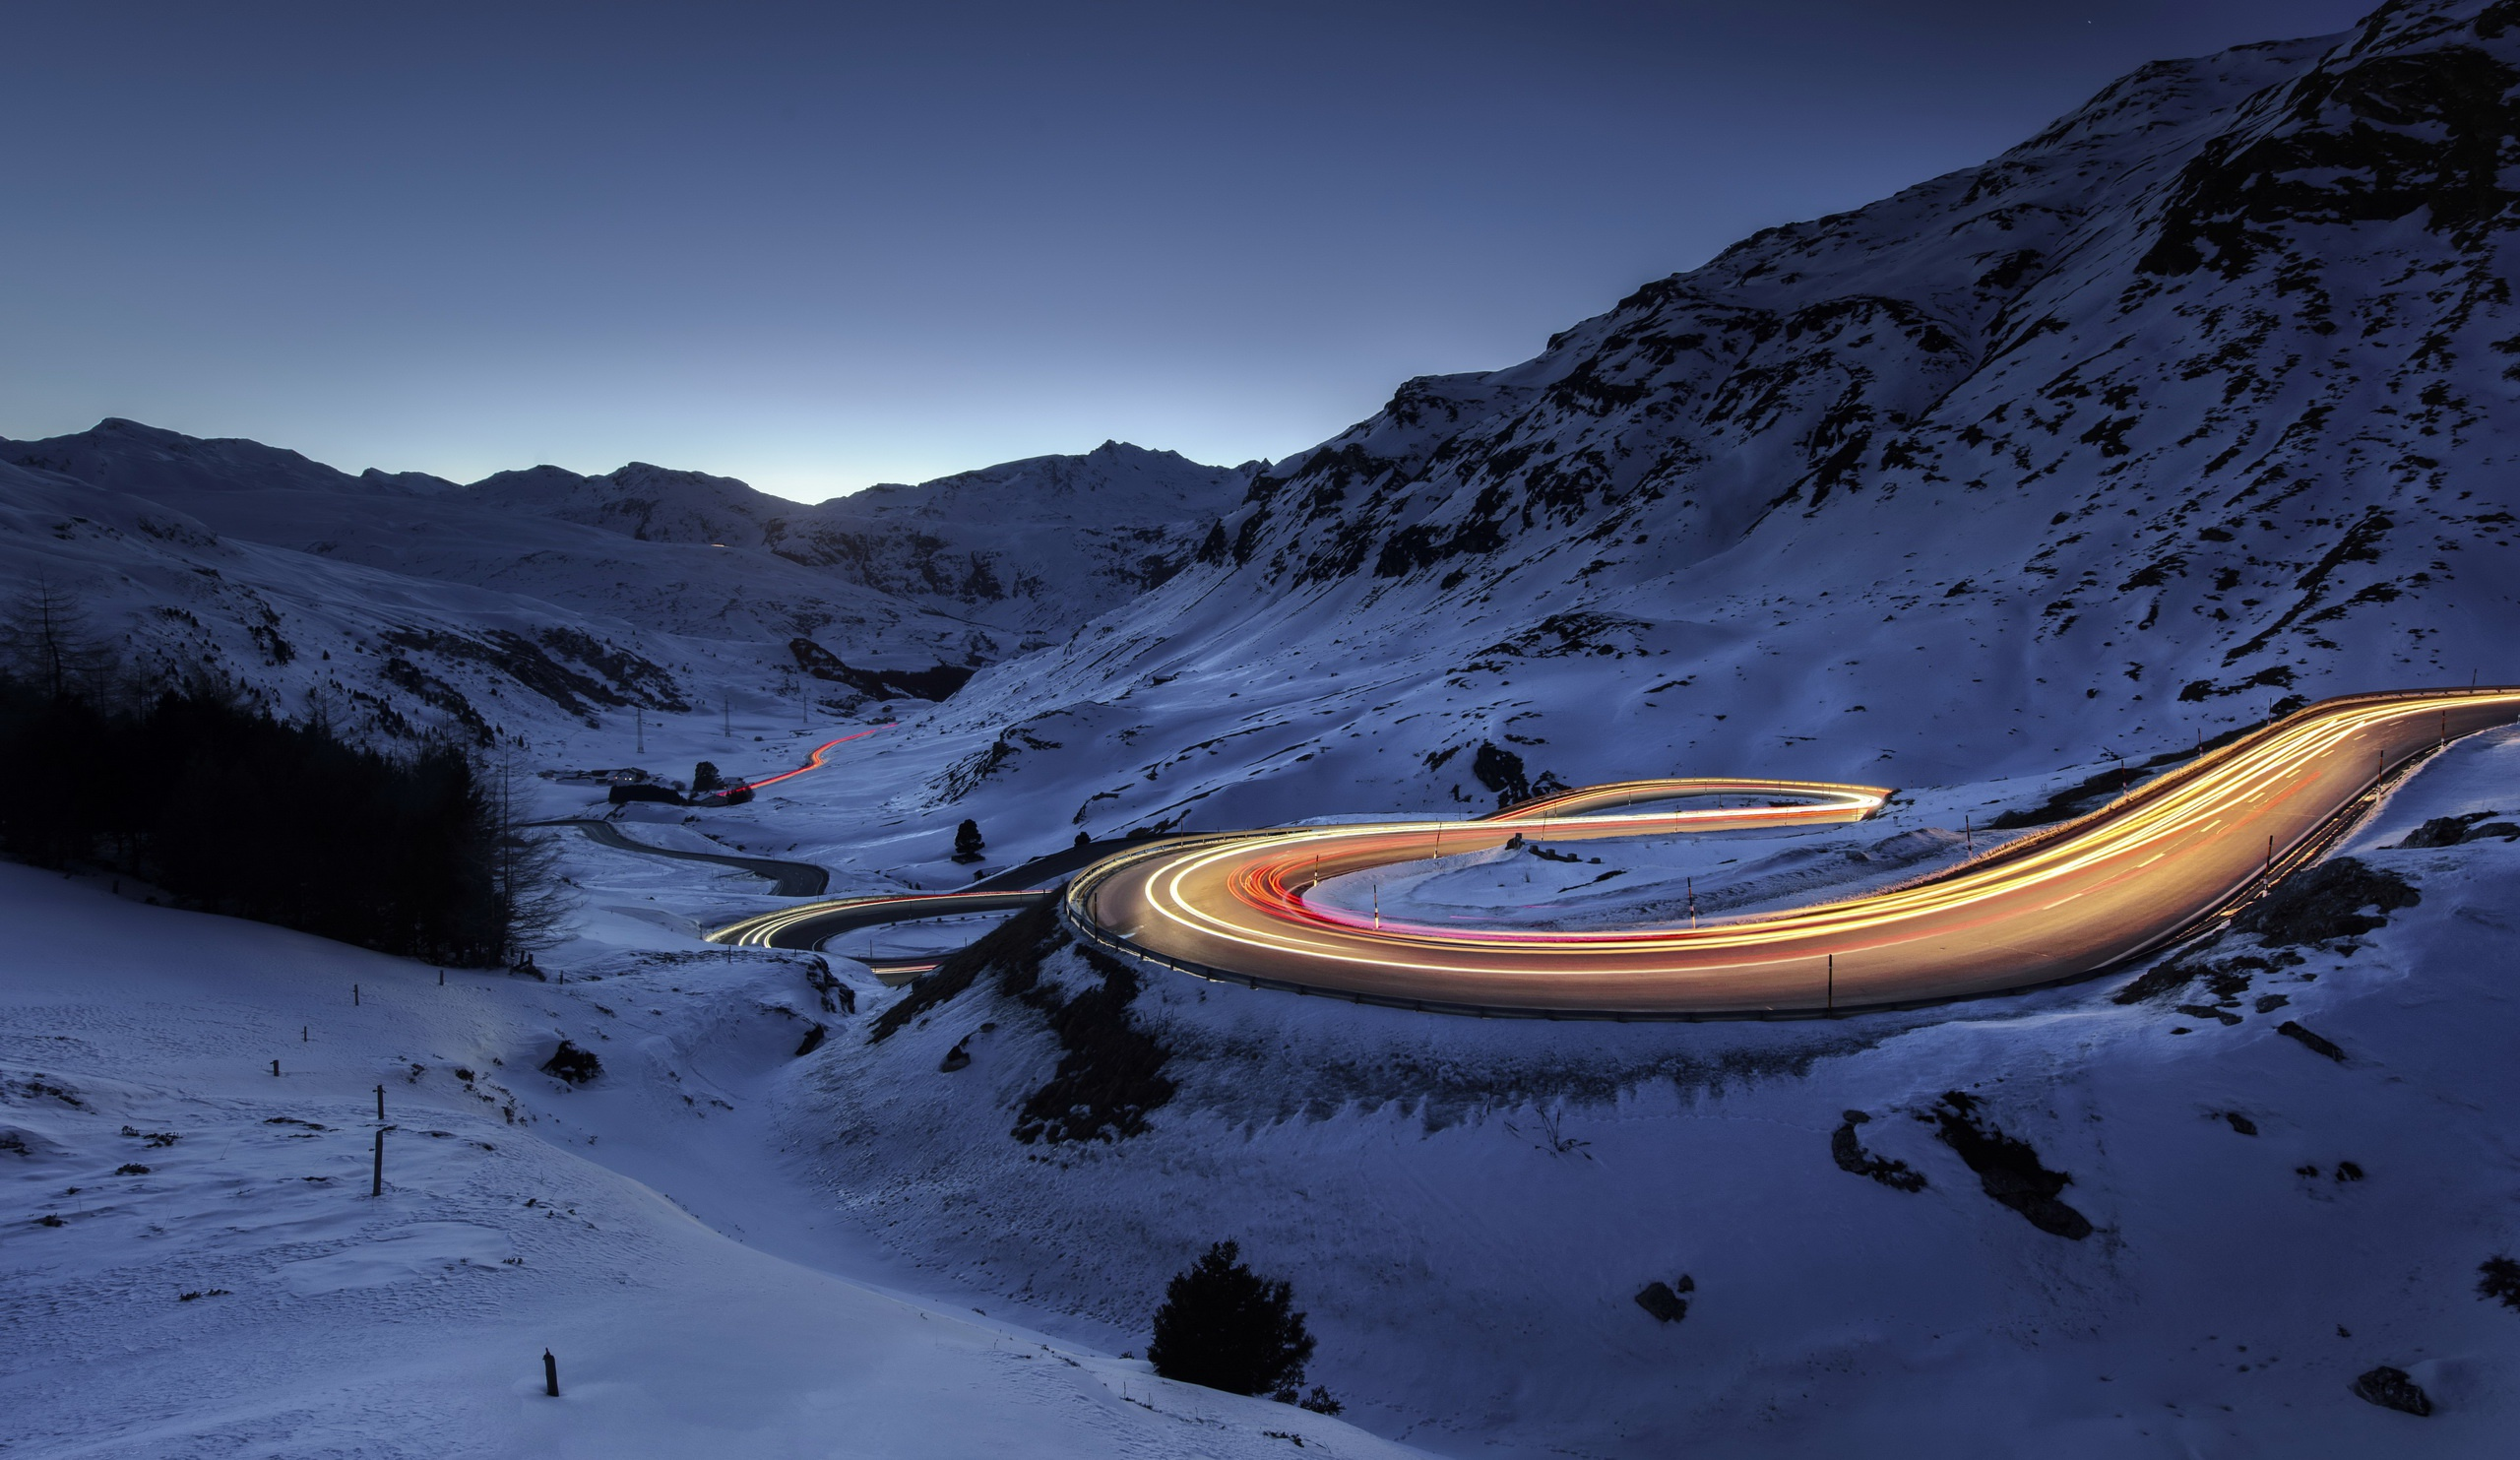 Snow road timelapse hd photography 4k wallpapers images for Sfondi pc 4k